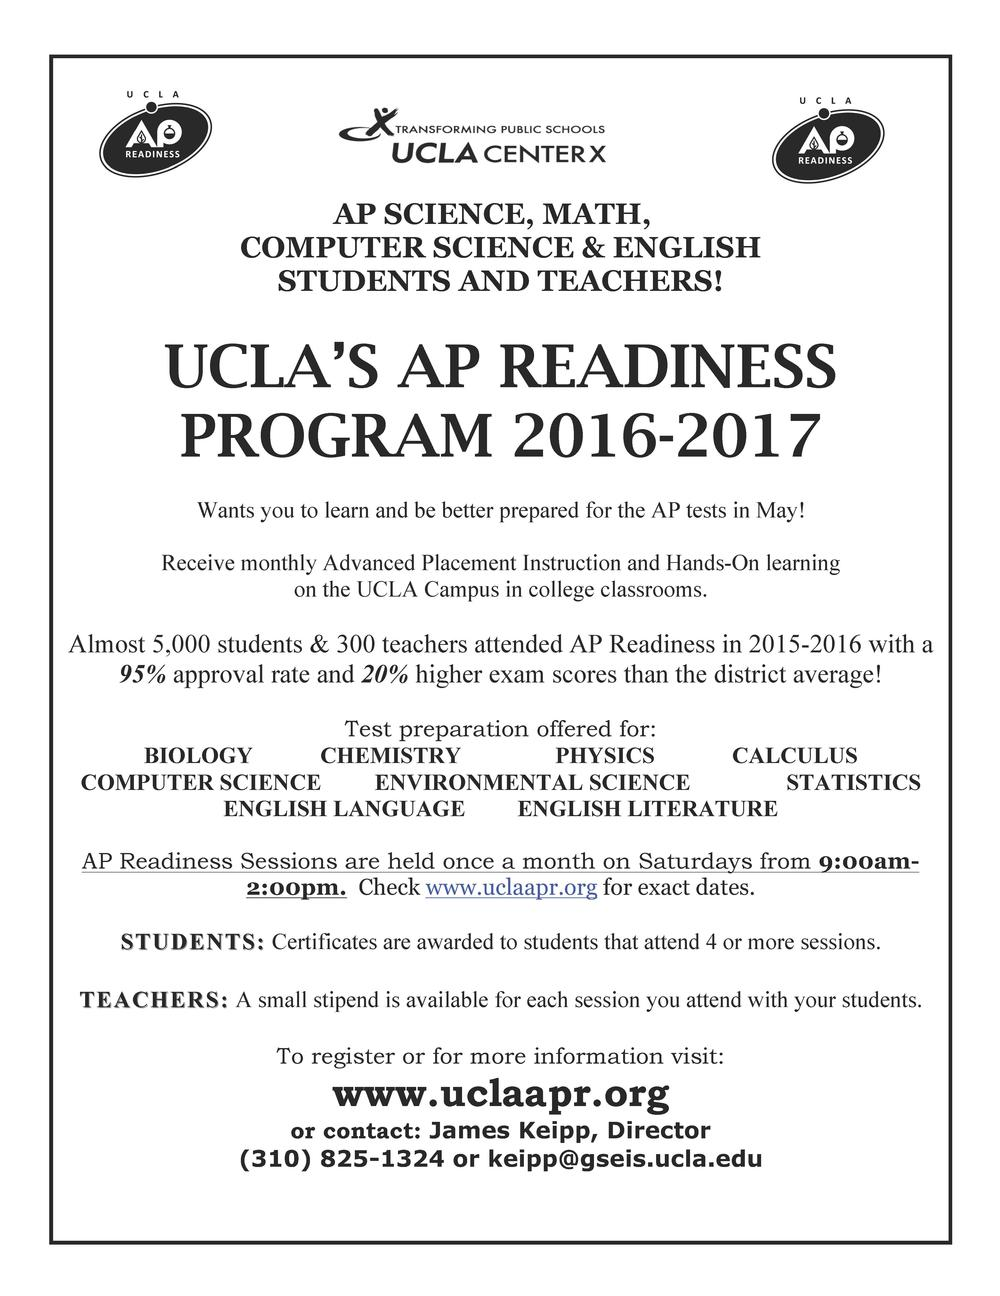 AP Readiness Flyer for 2016-2017.jpg